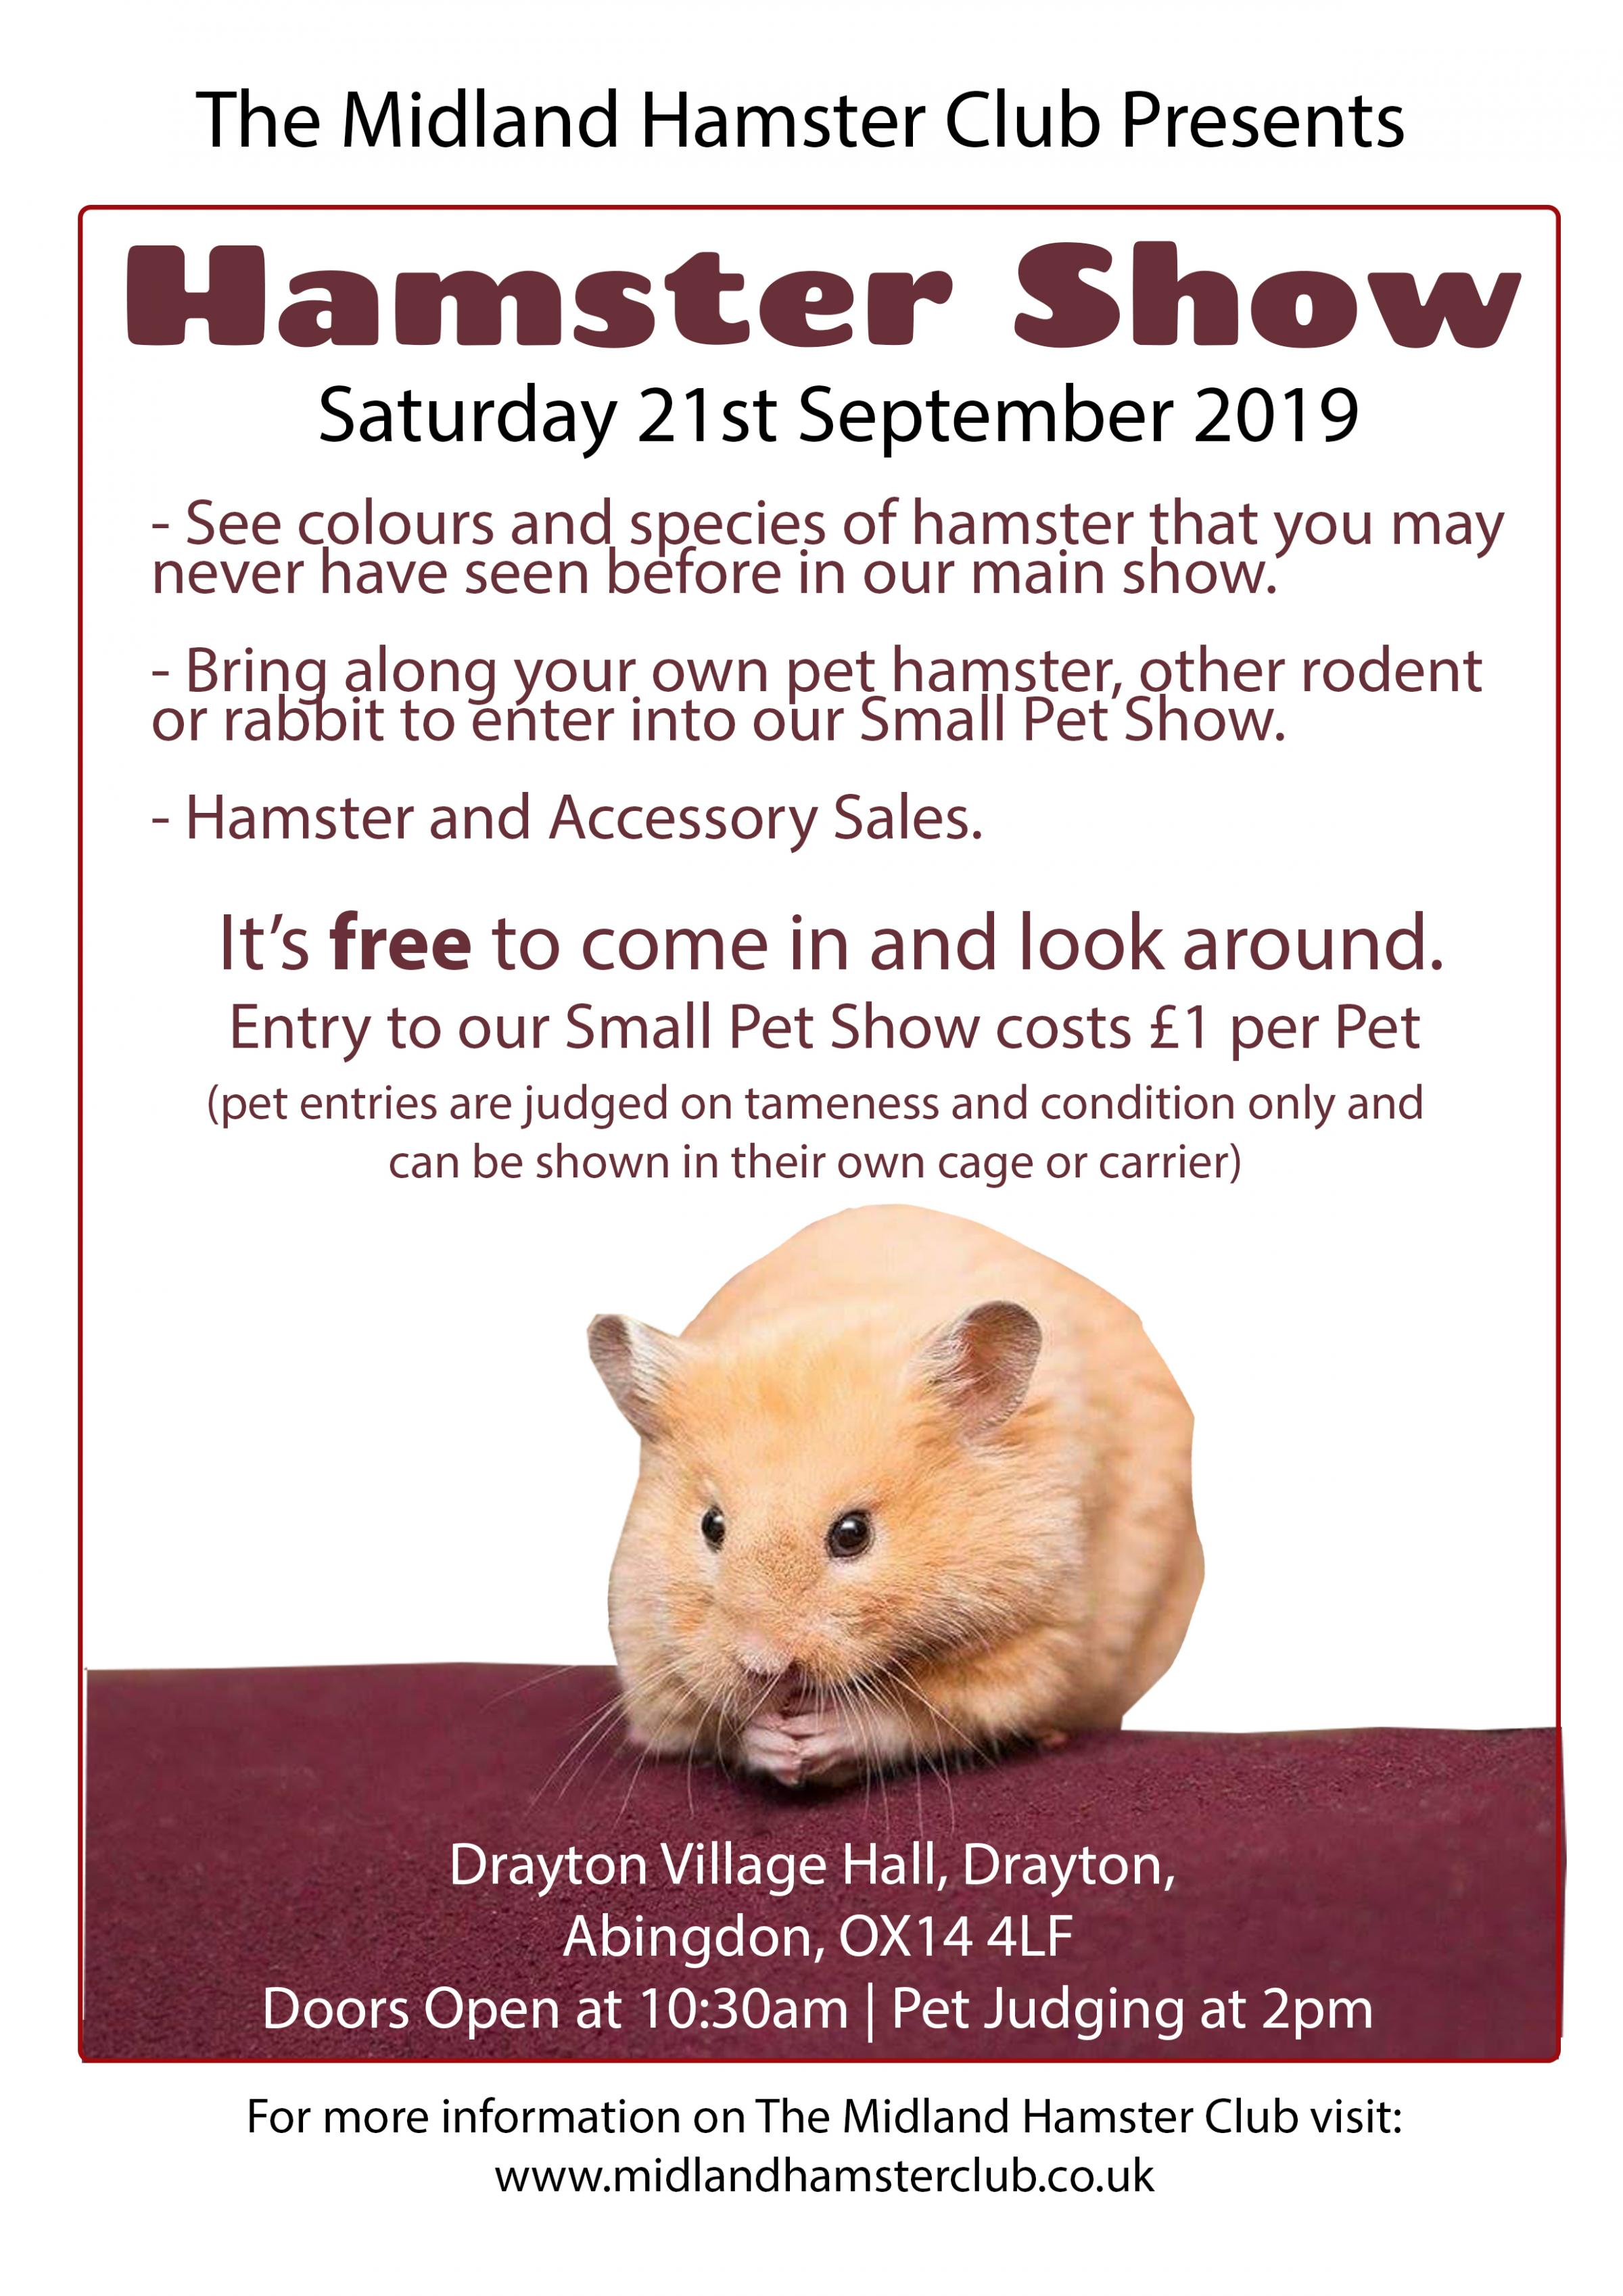 Drayton Hamster and Small Pet Show